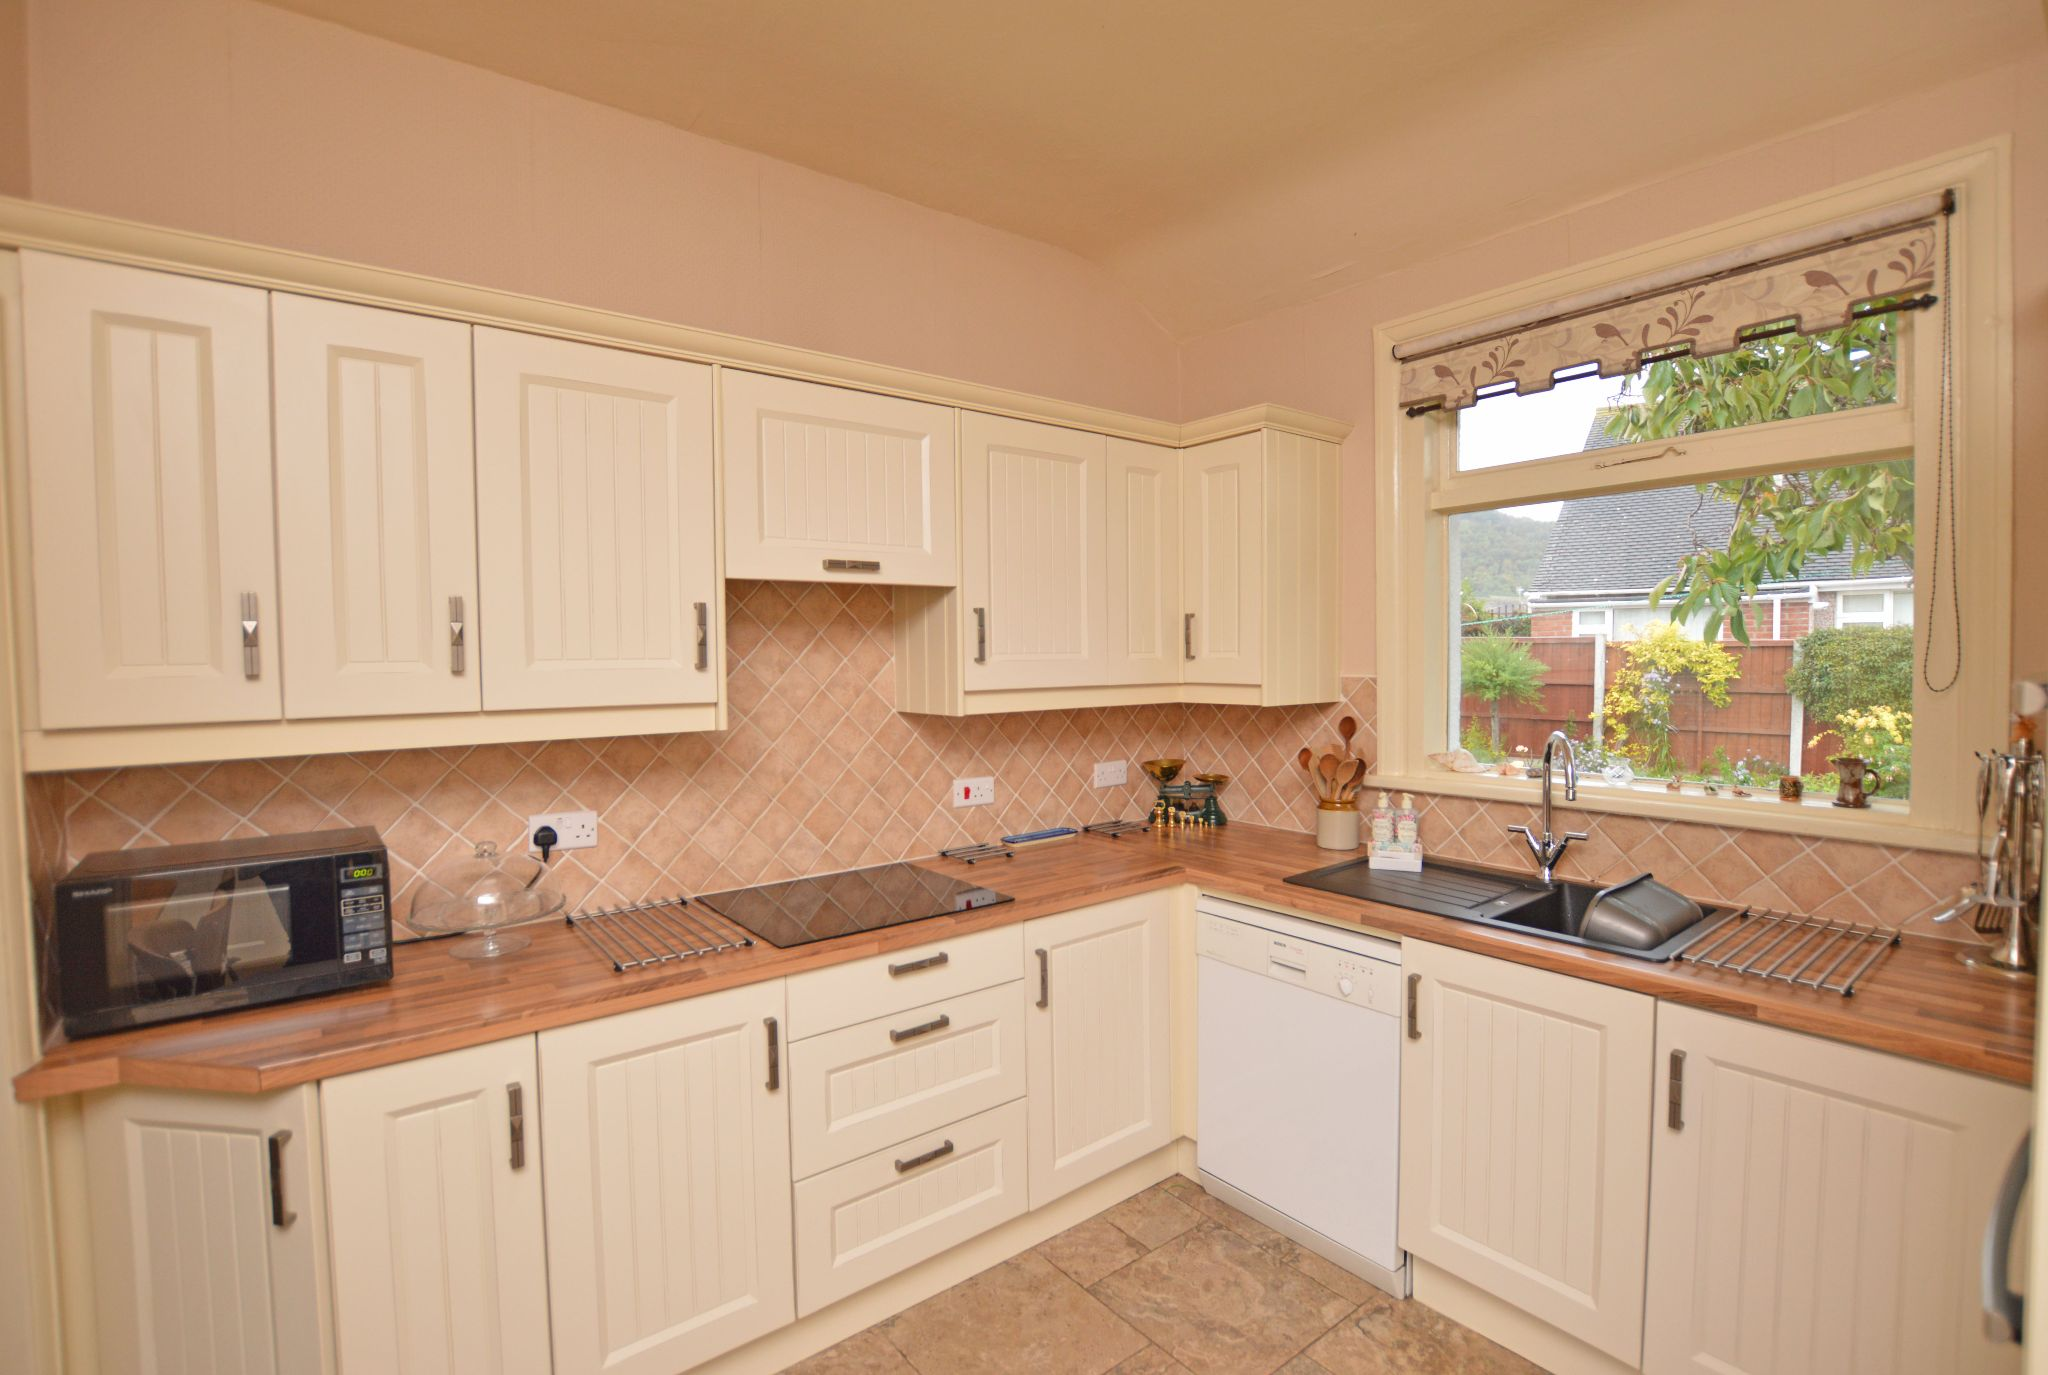 4 bedroom detached bungalow For Sale in Abergele - Kitchen View 2